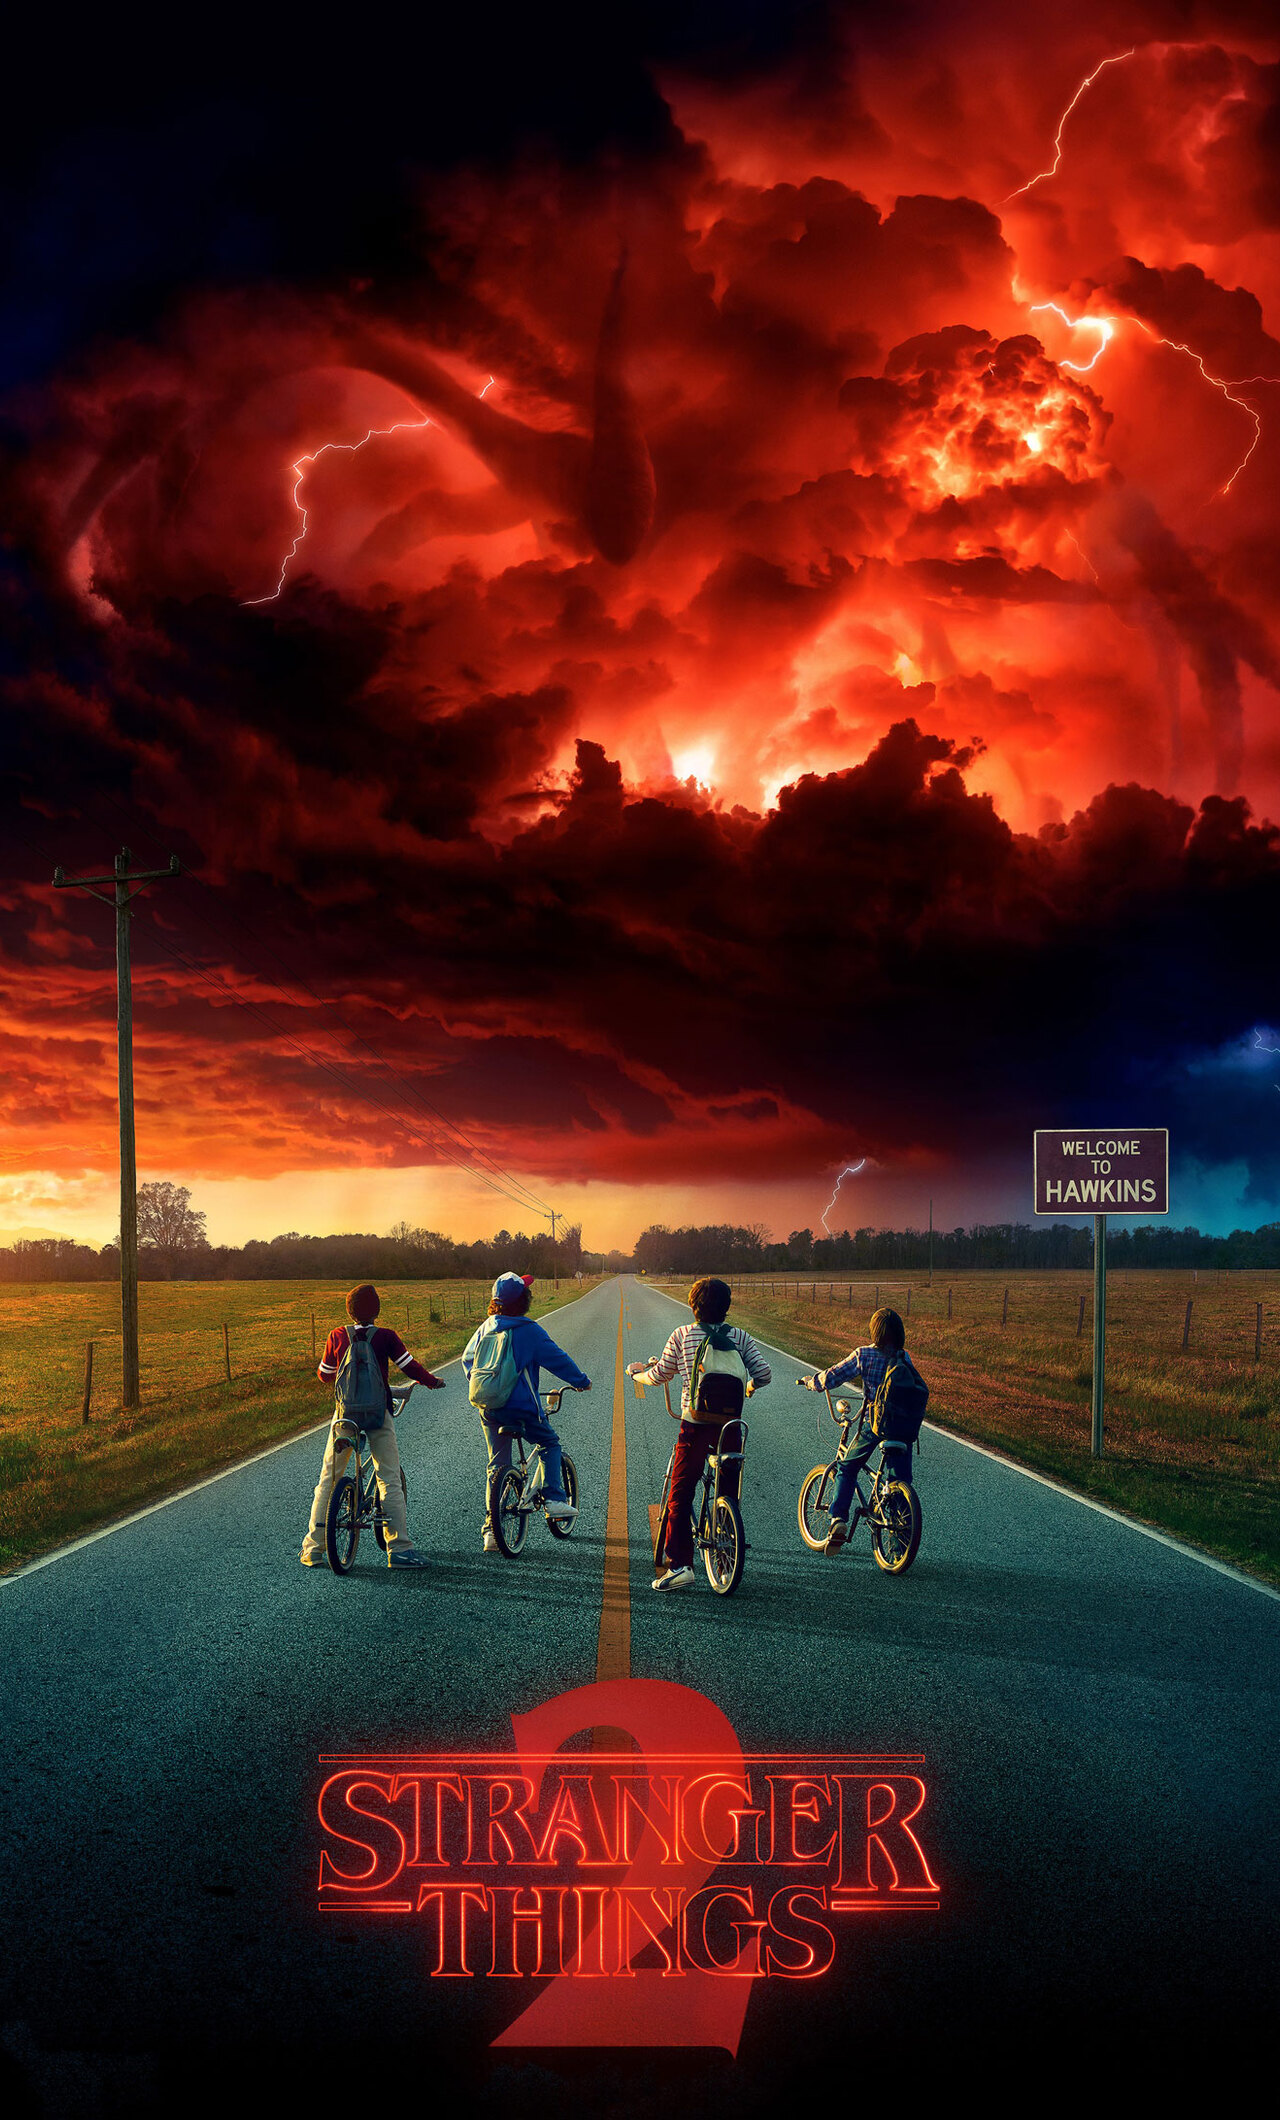 stranger-things-season-2-xe.jpg